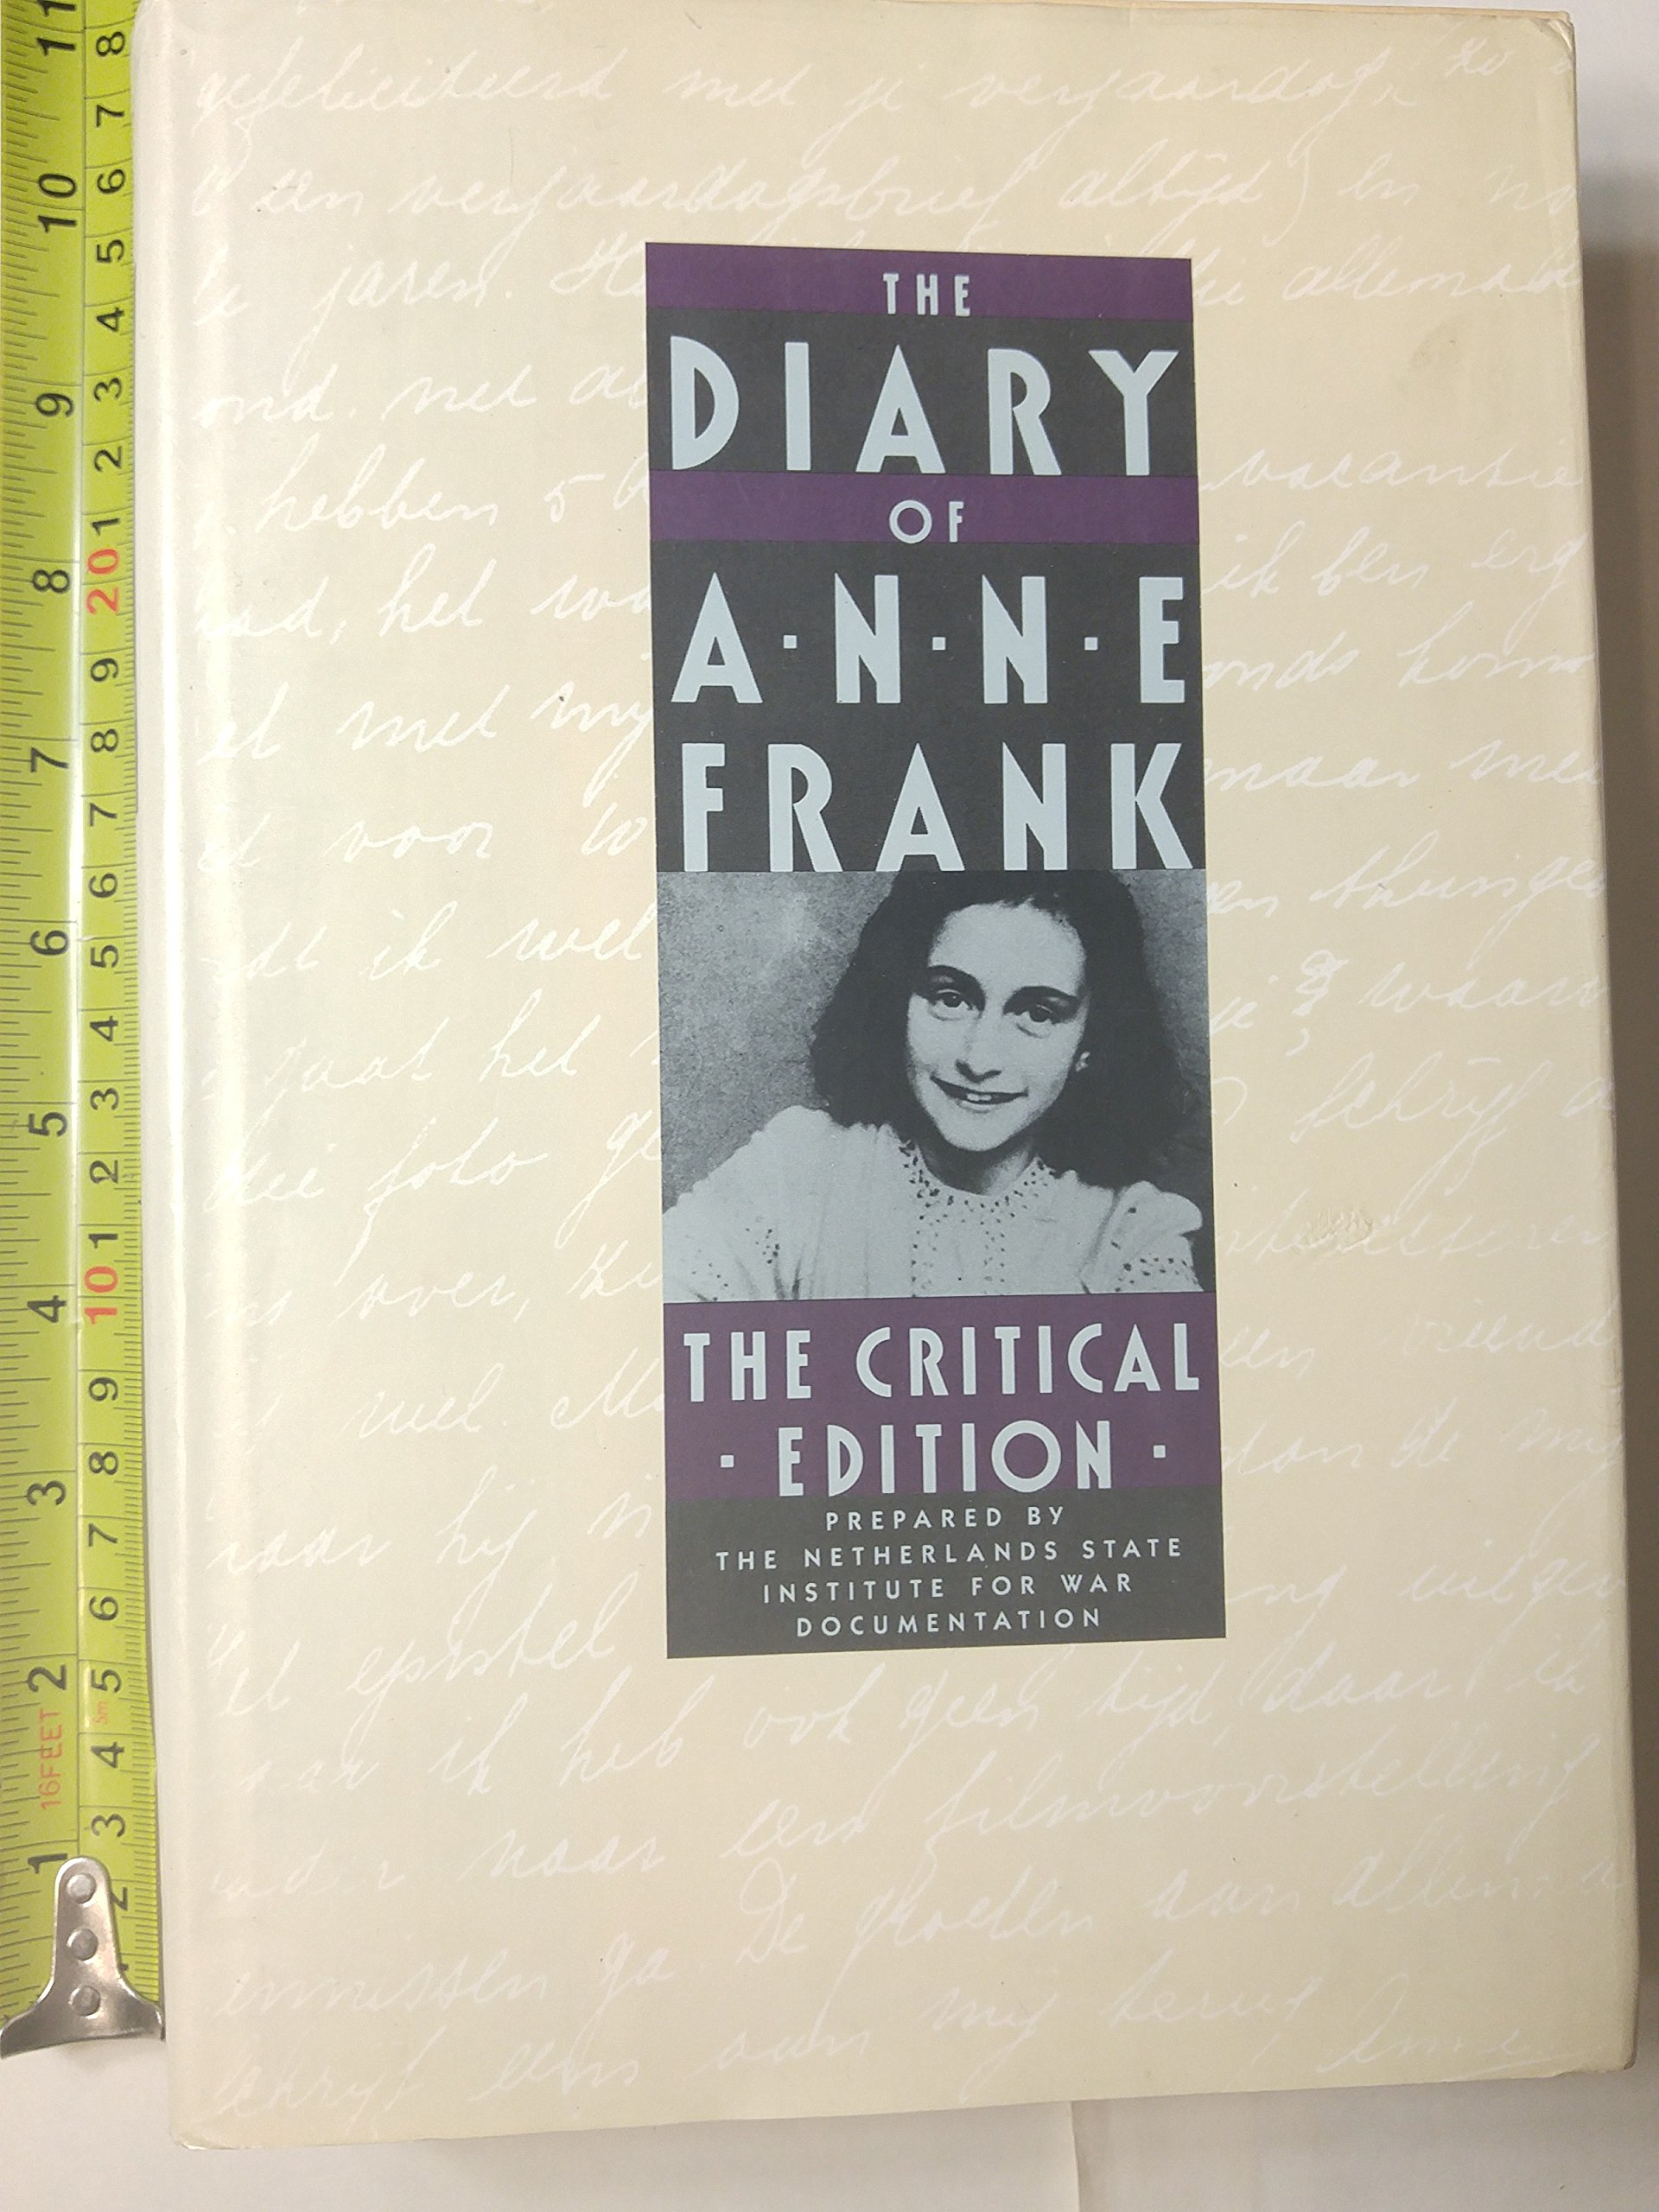 research paper on anne frank Research paper about anne frankbuy academic papershomework for year 2paper writing help onlinewrite my essay now.